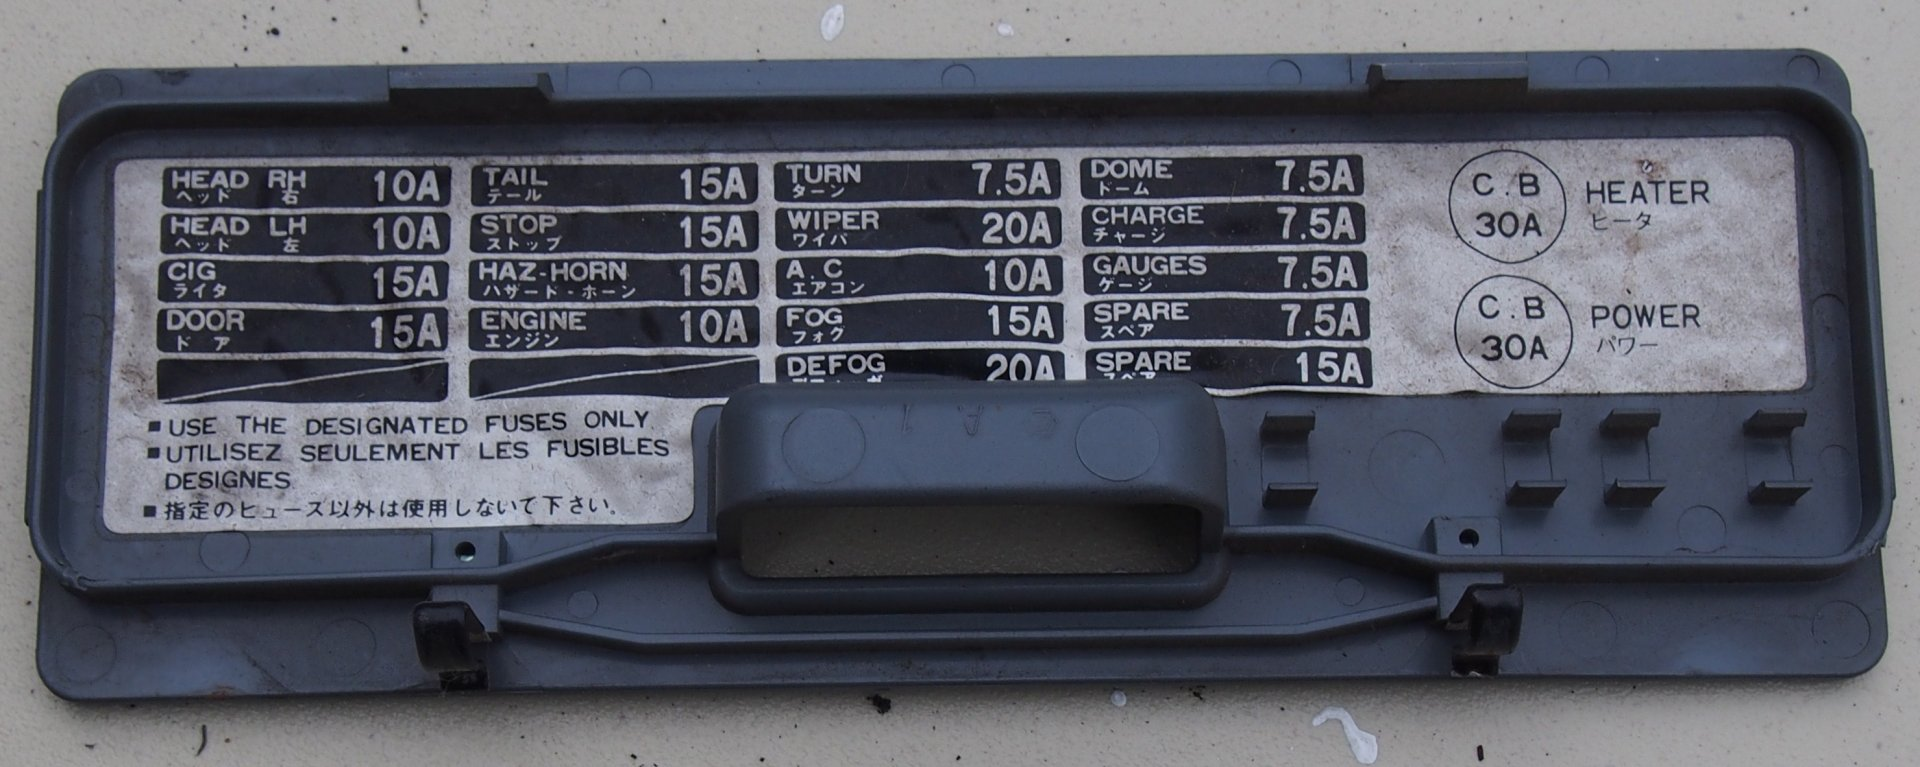 Fj60 Fuse Box Cover Auto Electrical Wiring Diagram 2010 Sonata Images Gallery